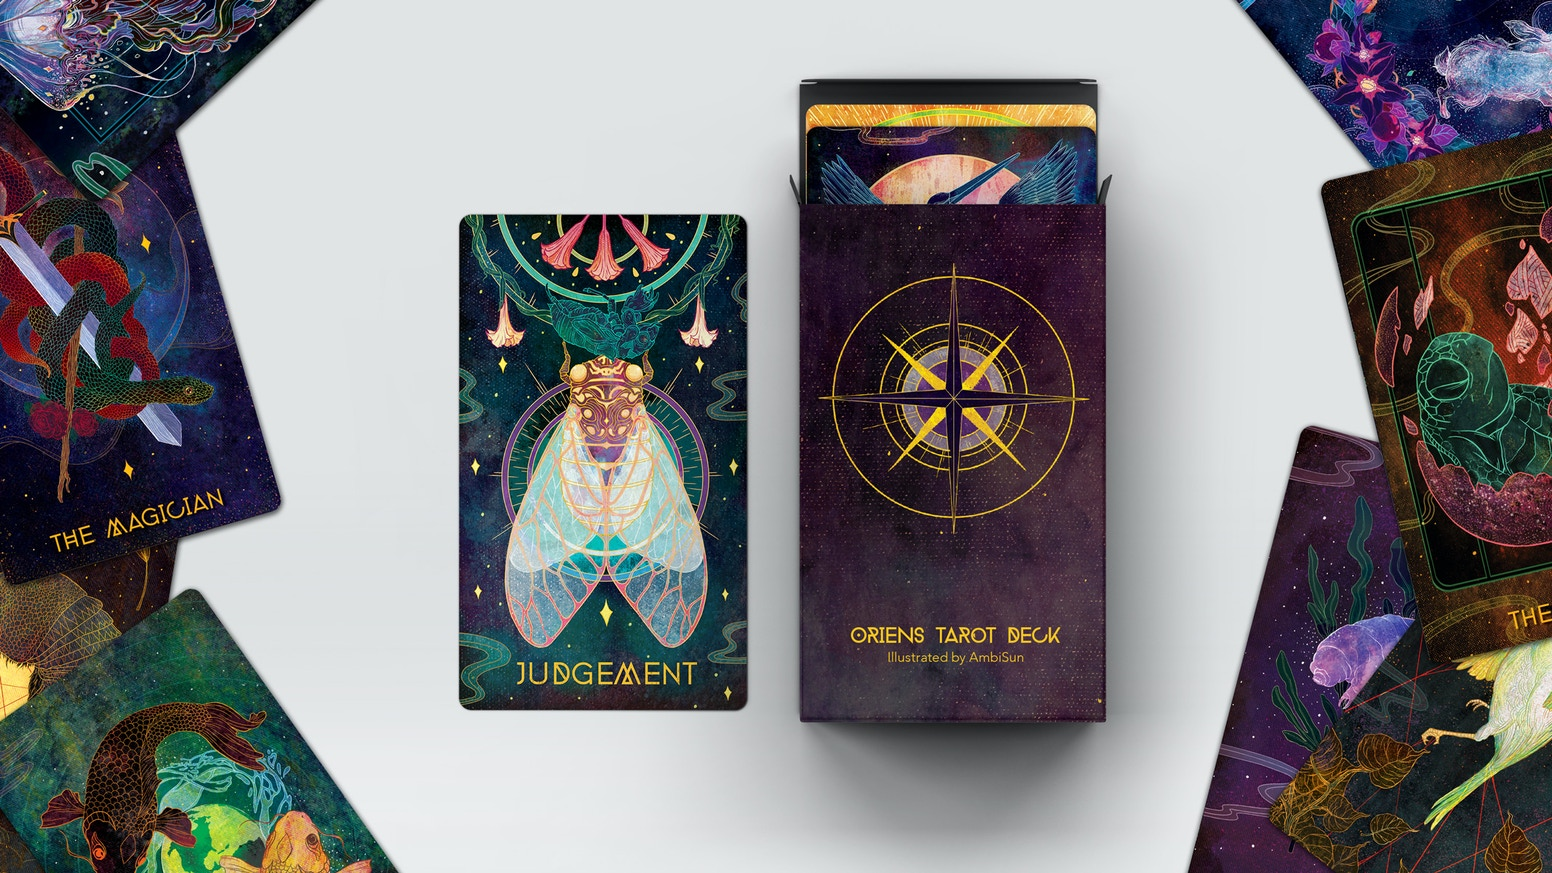 The Oriens tarot deck features 78 unique animals, reflecting nature through mythical and ethereal means.